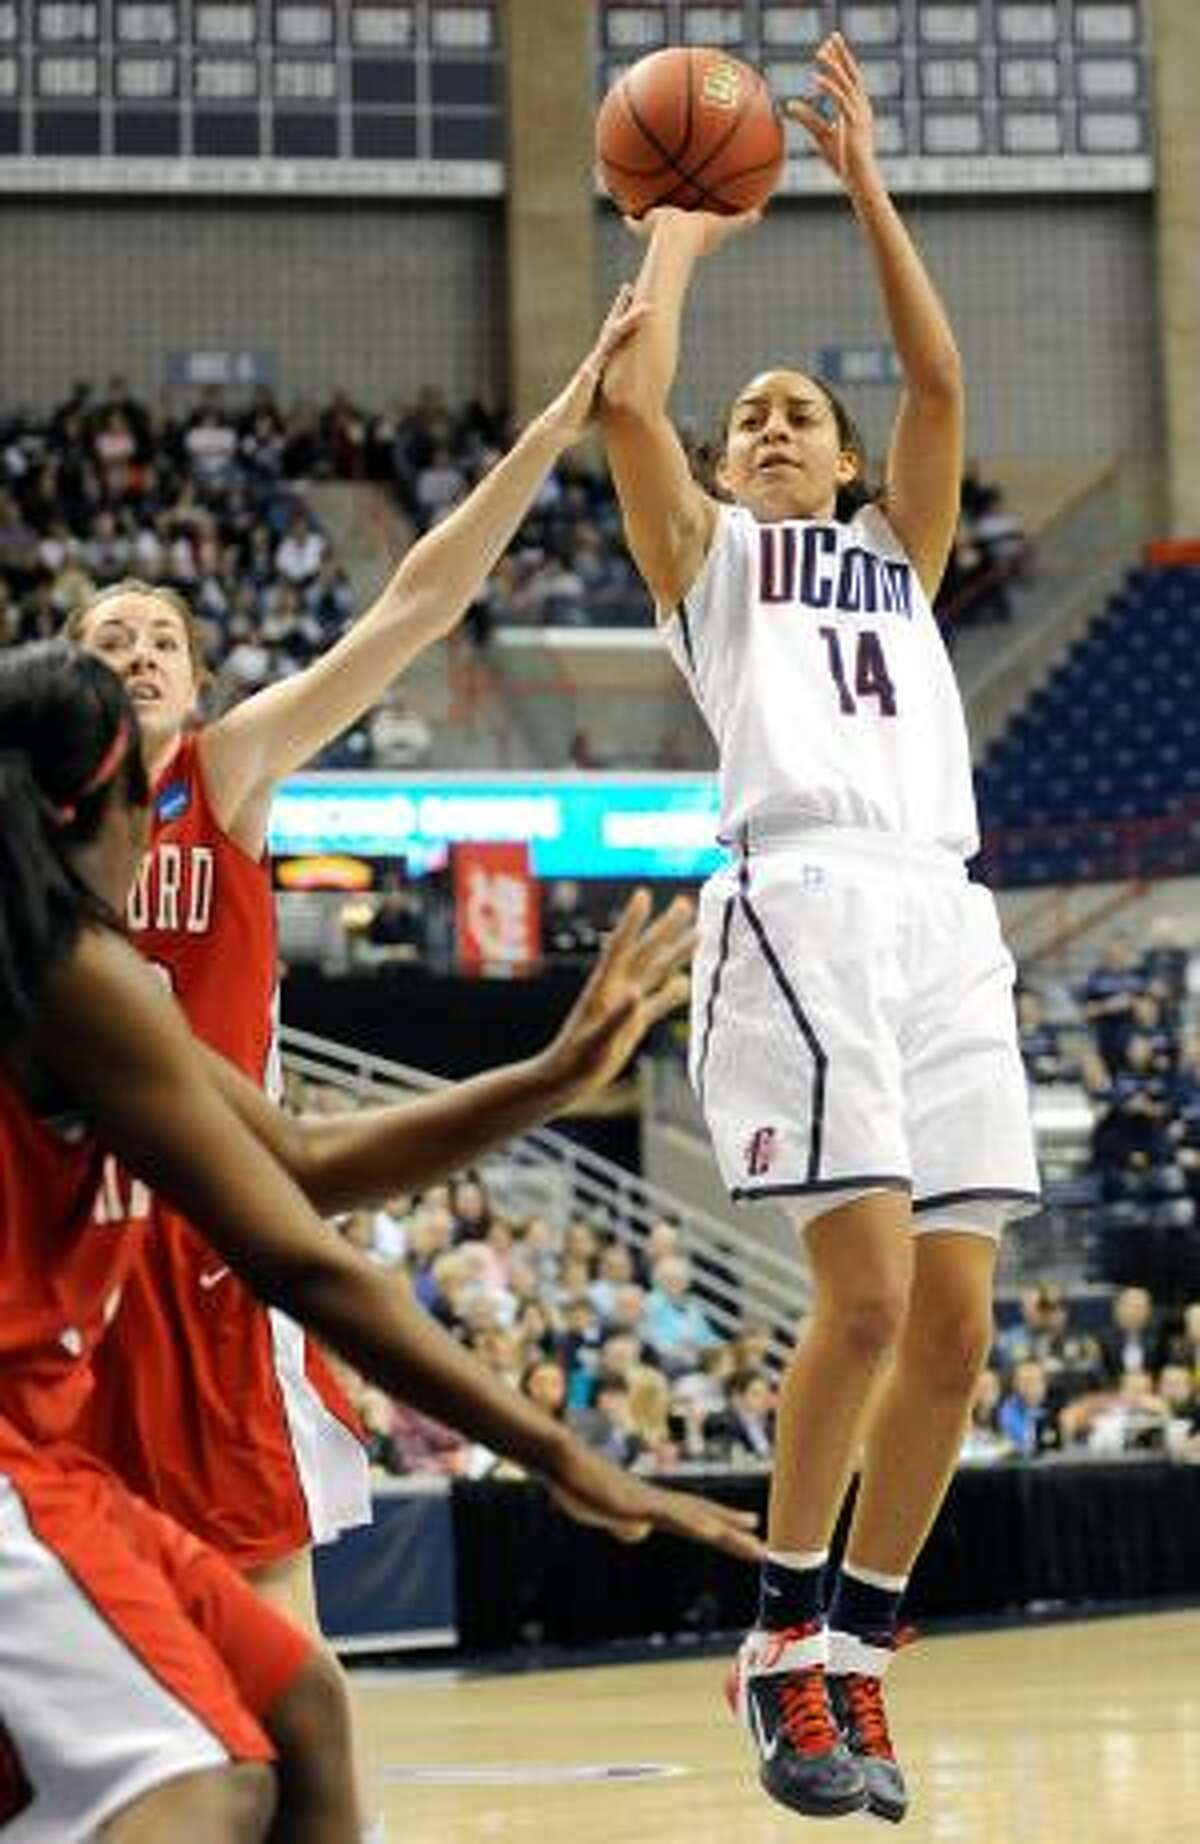 AP Connecticut's Bria Hartley, right, goes up for a basket while guarded by Hartford's Mary Silvia, back left, during the first half of an East Regional first-round tournament game in Storrs Sunday. The Huskies won 75-39. Top-ranked UConn faces No. 8 Purdue Tuesday night.